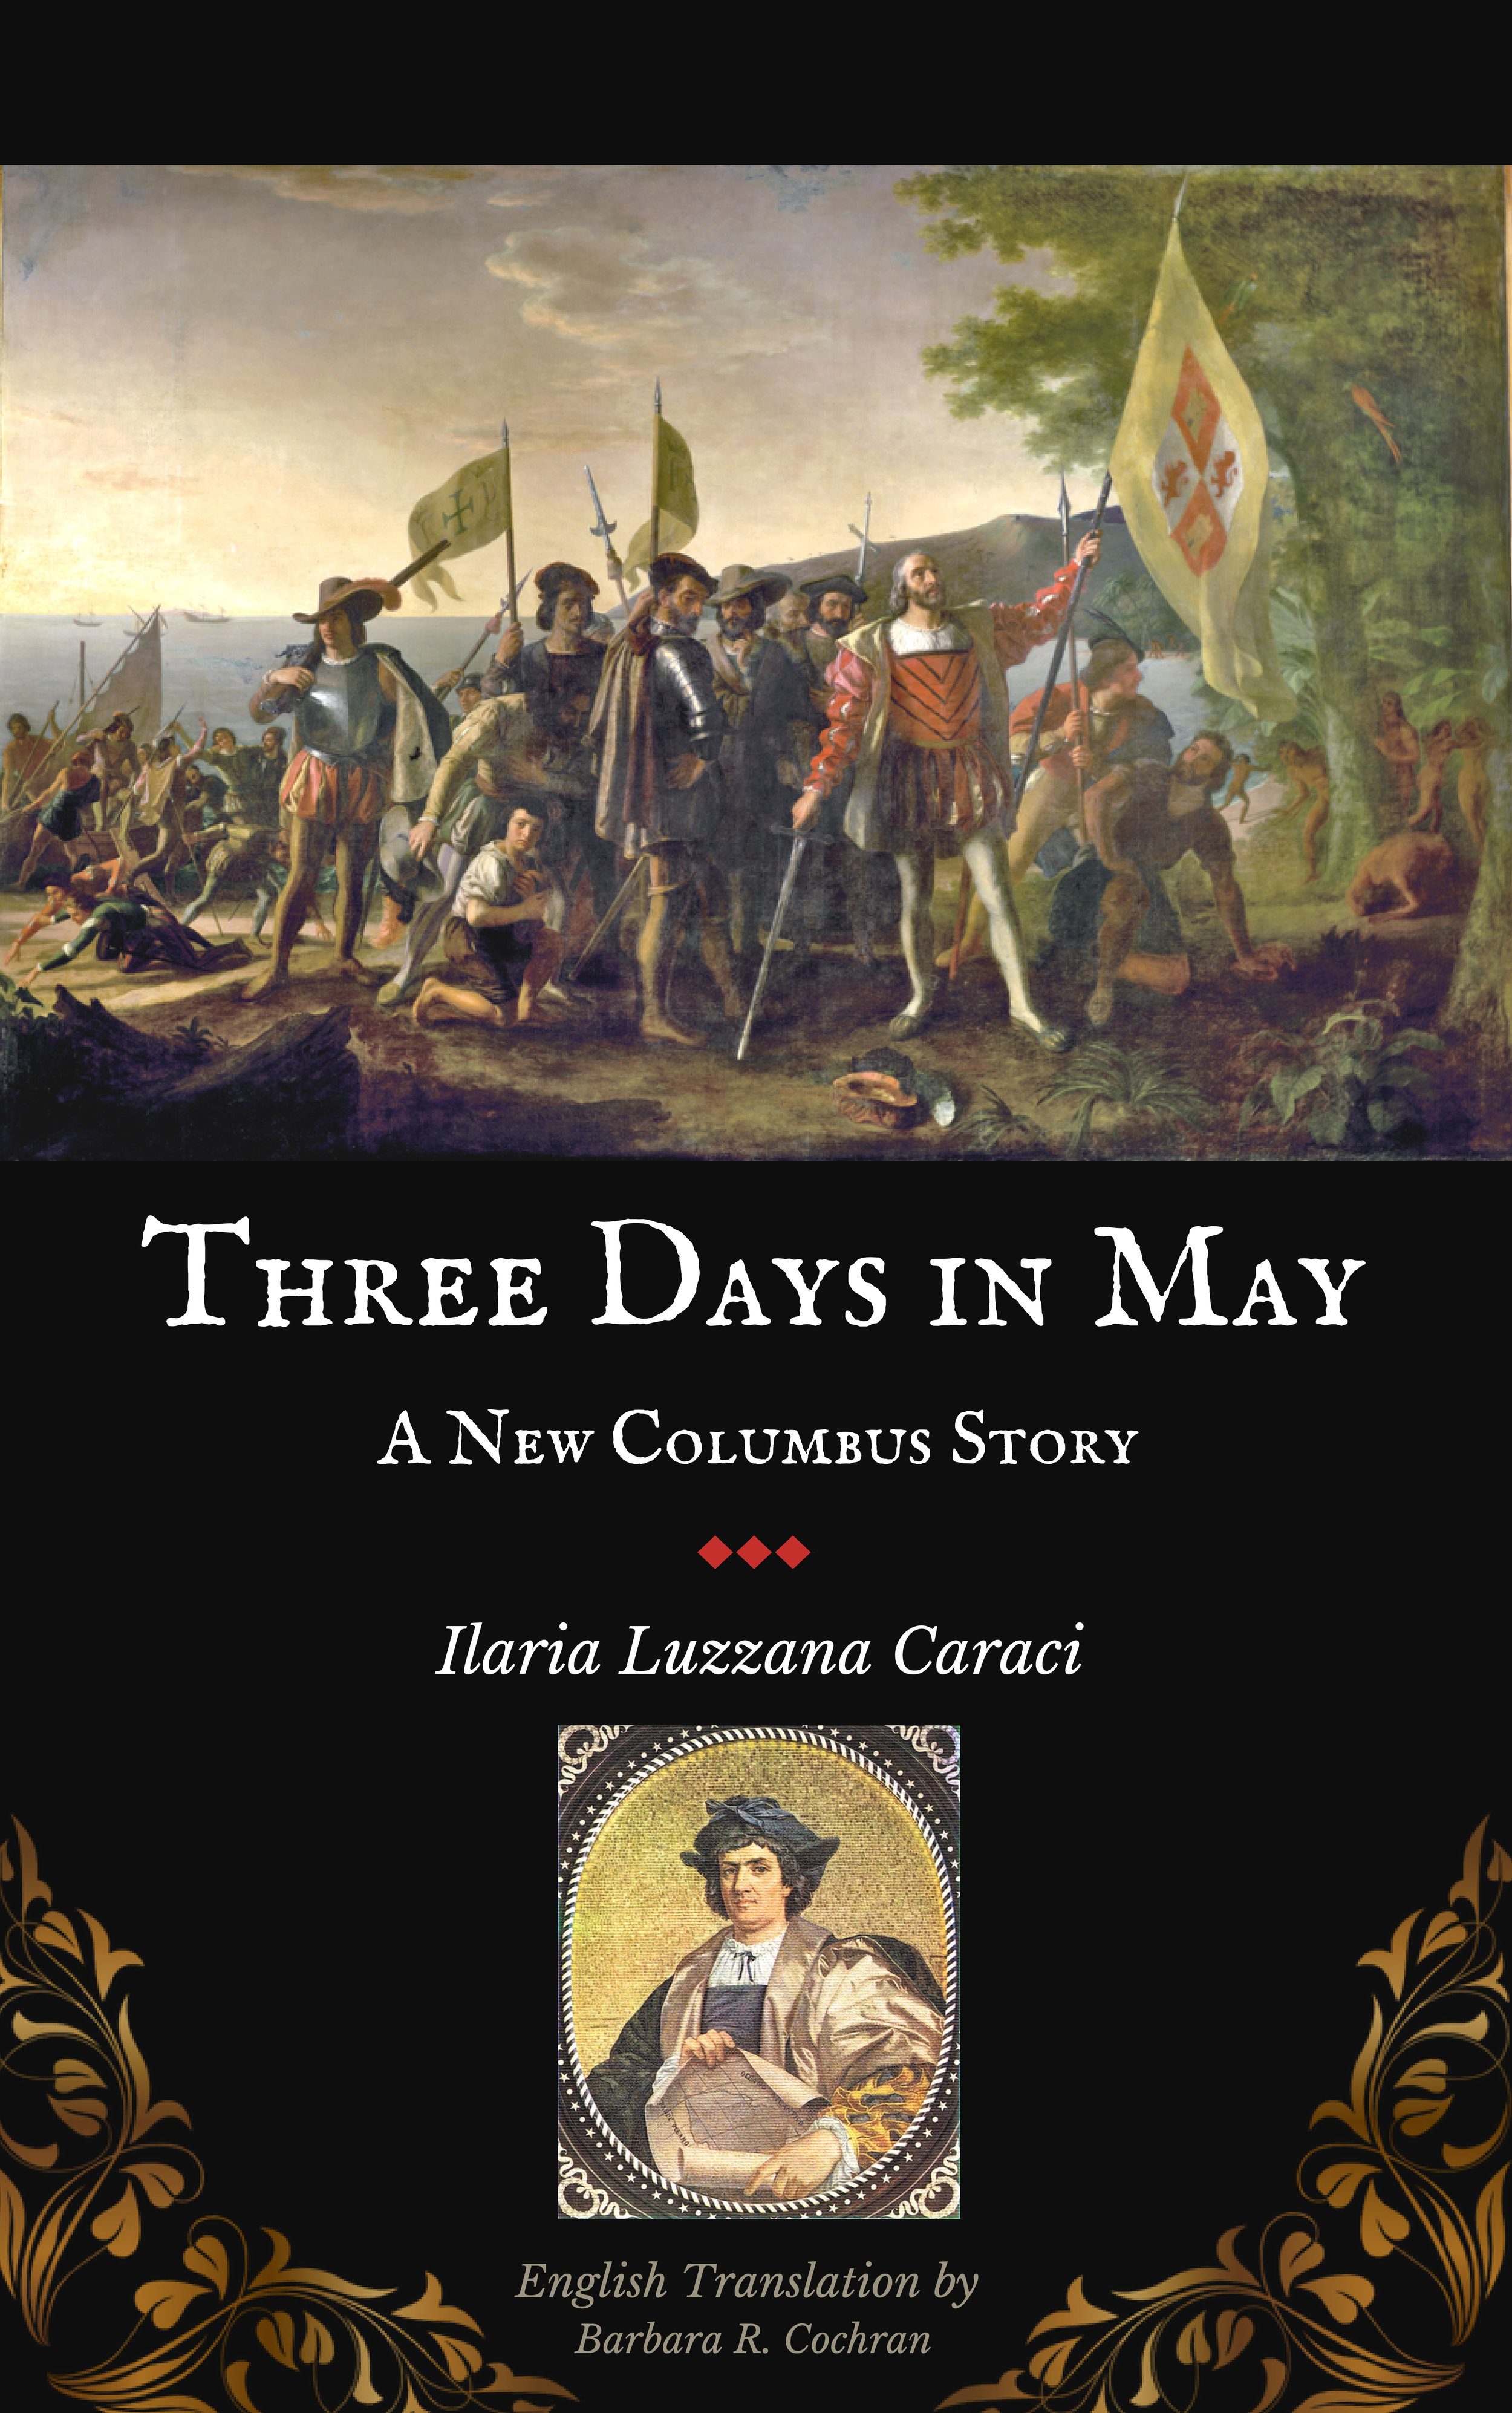 ThreeDaysinMay_Ebook Cover_01.jpg